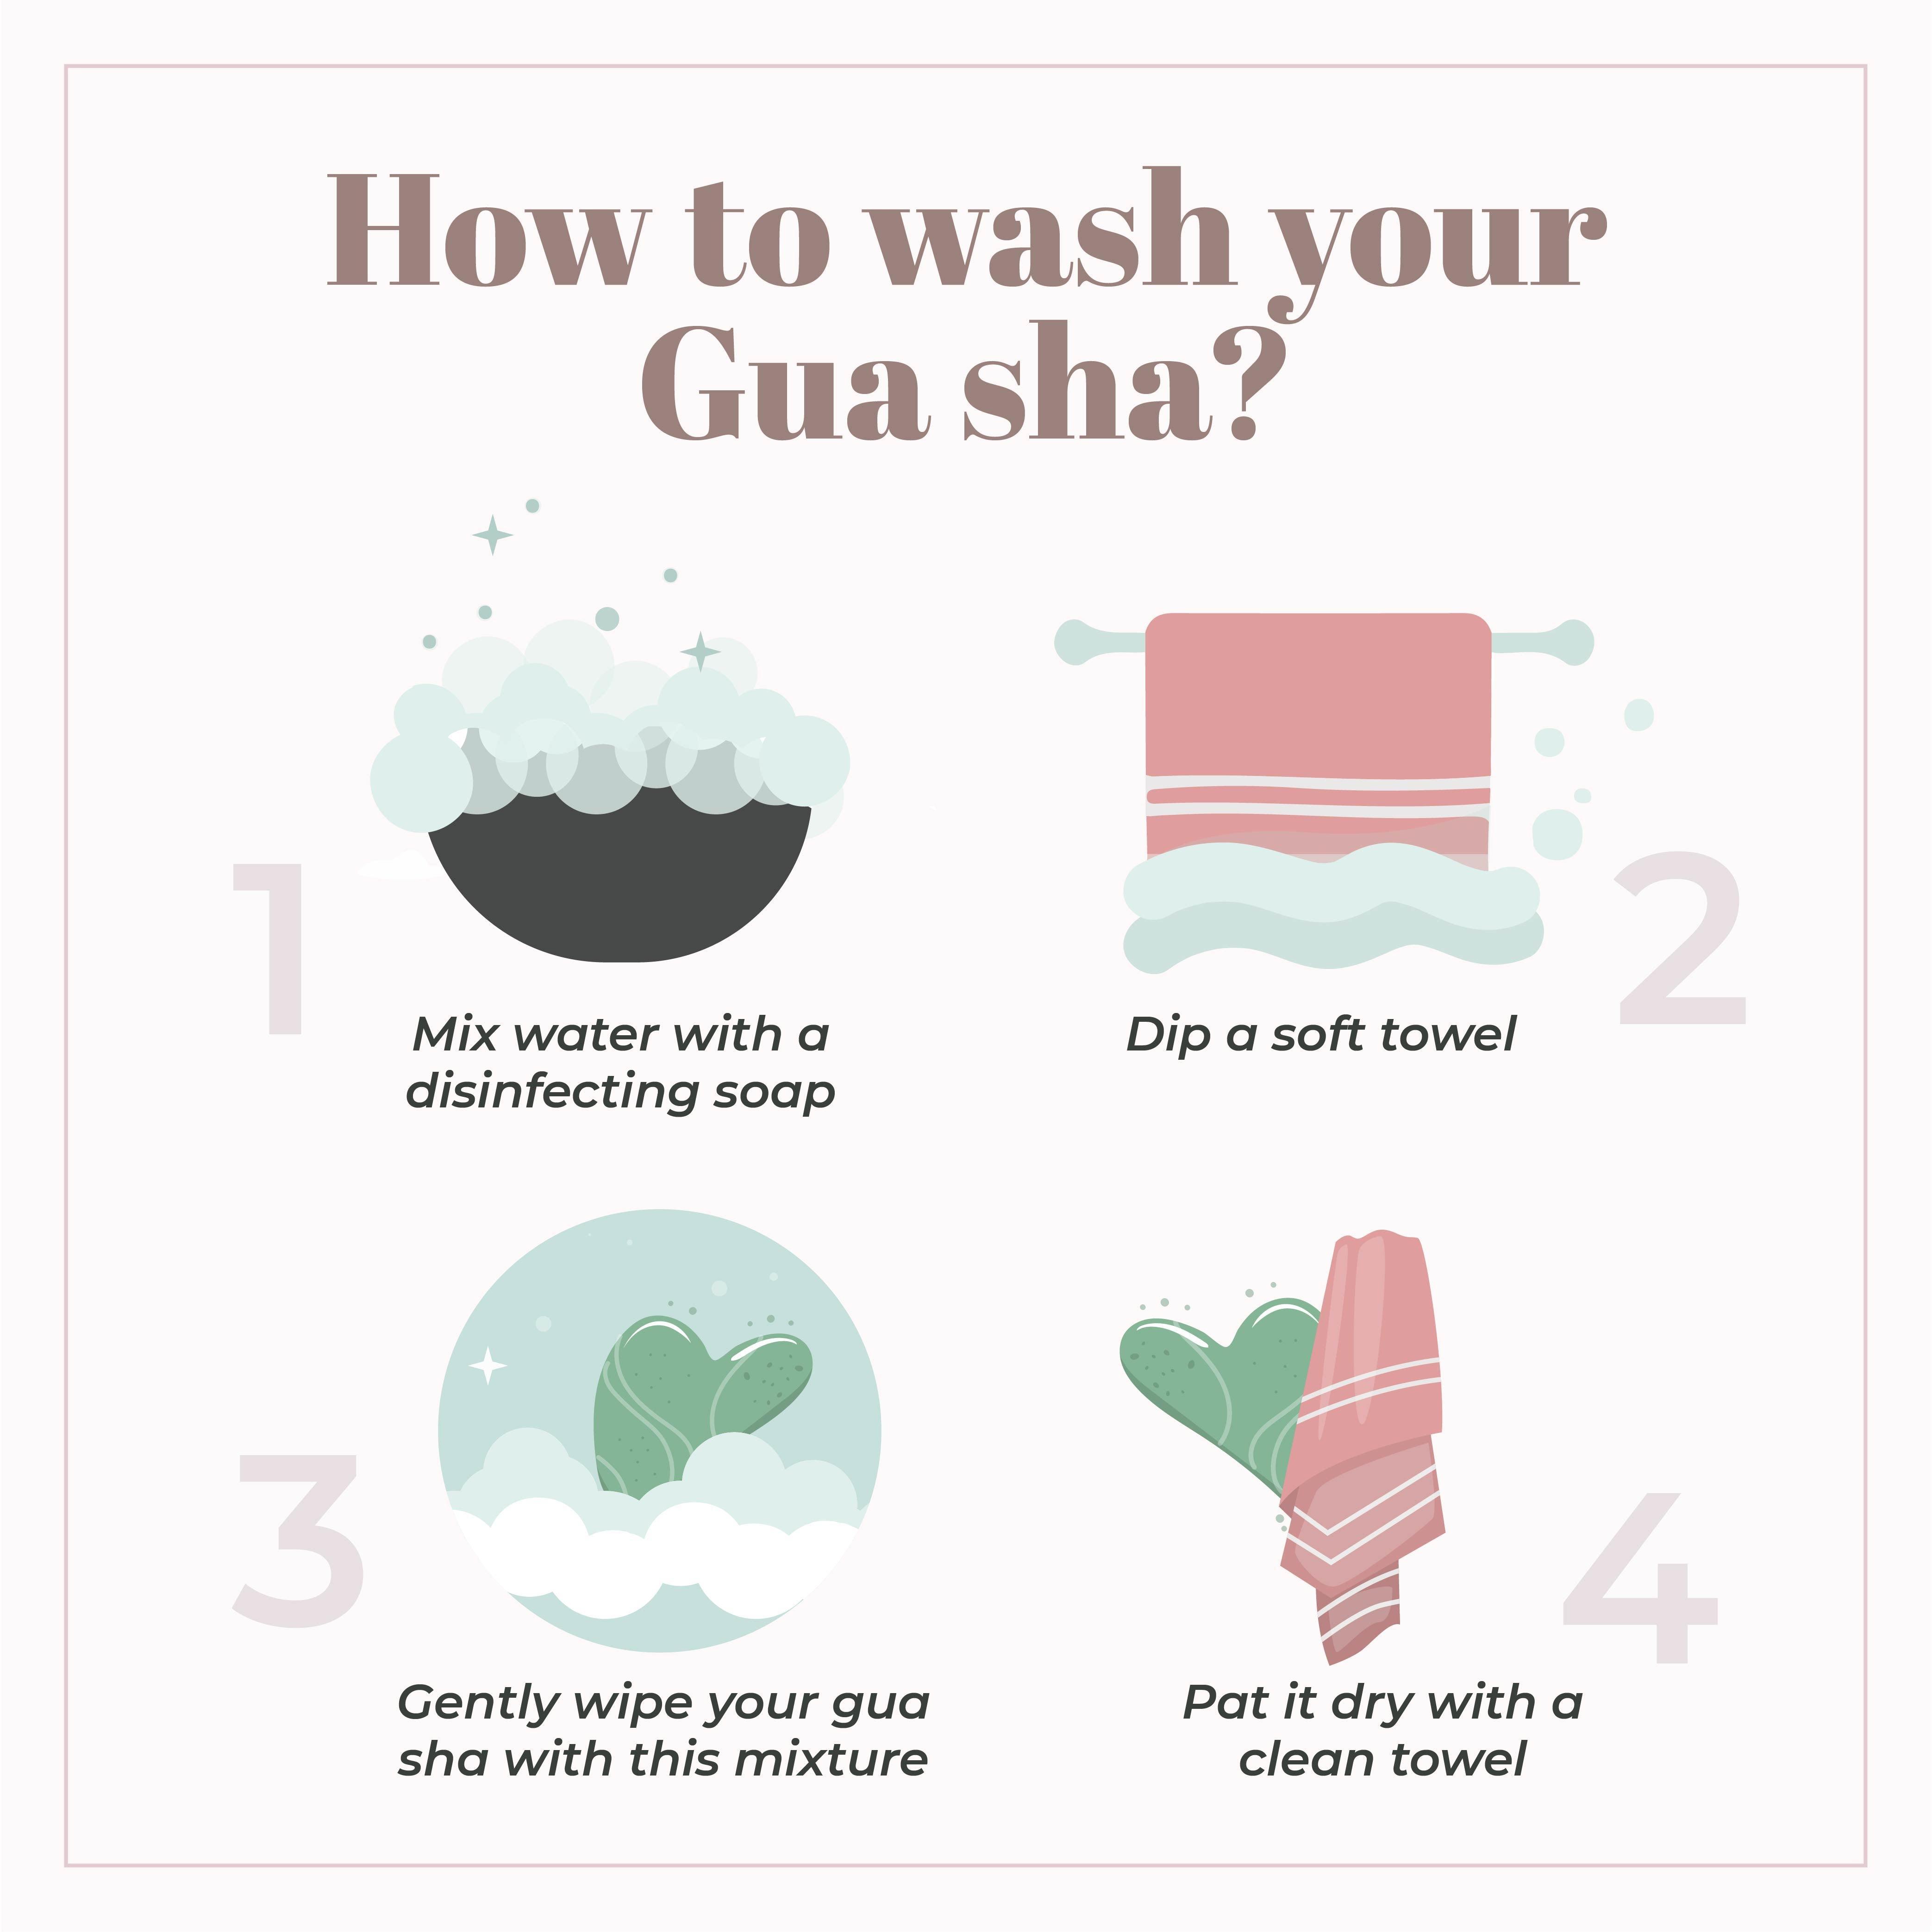 This is an image of how to wash and clean your gua sha